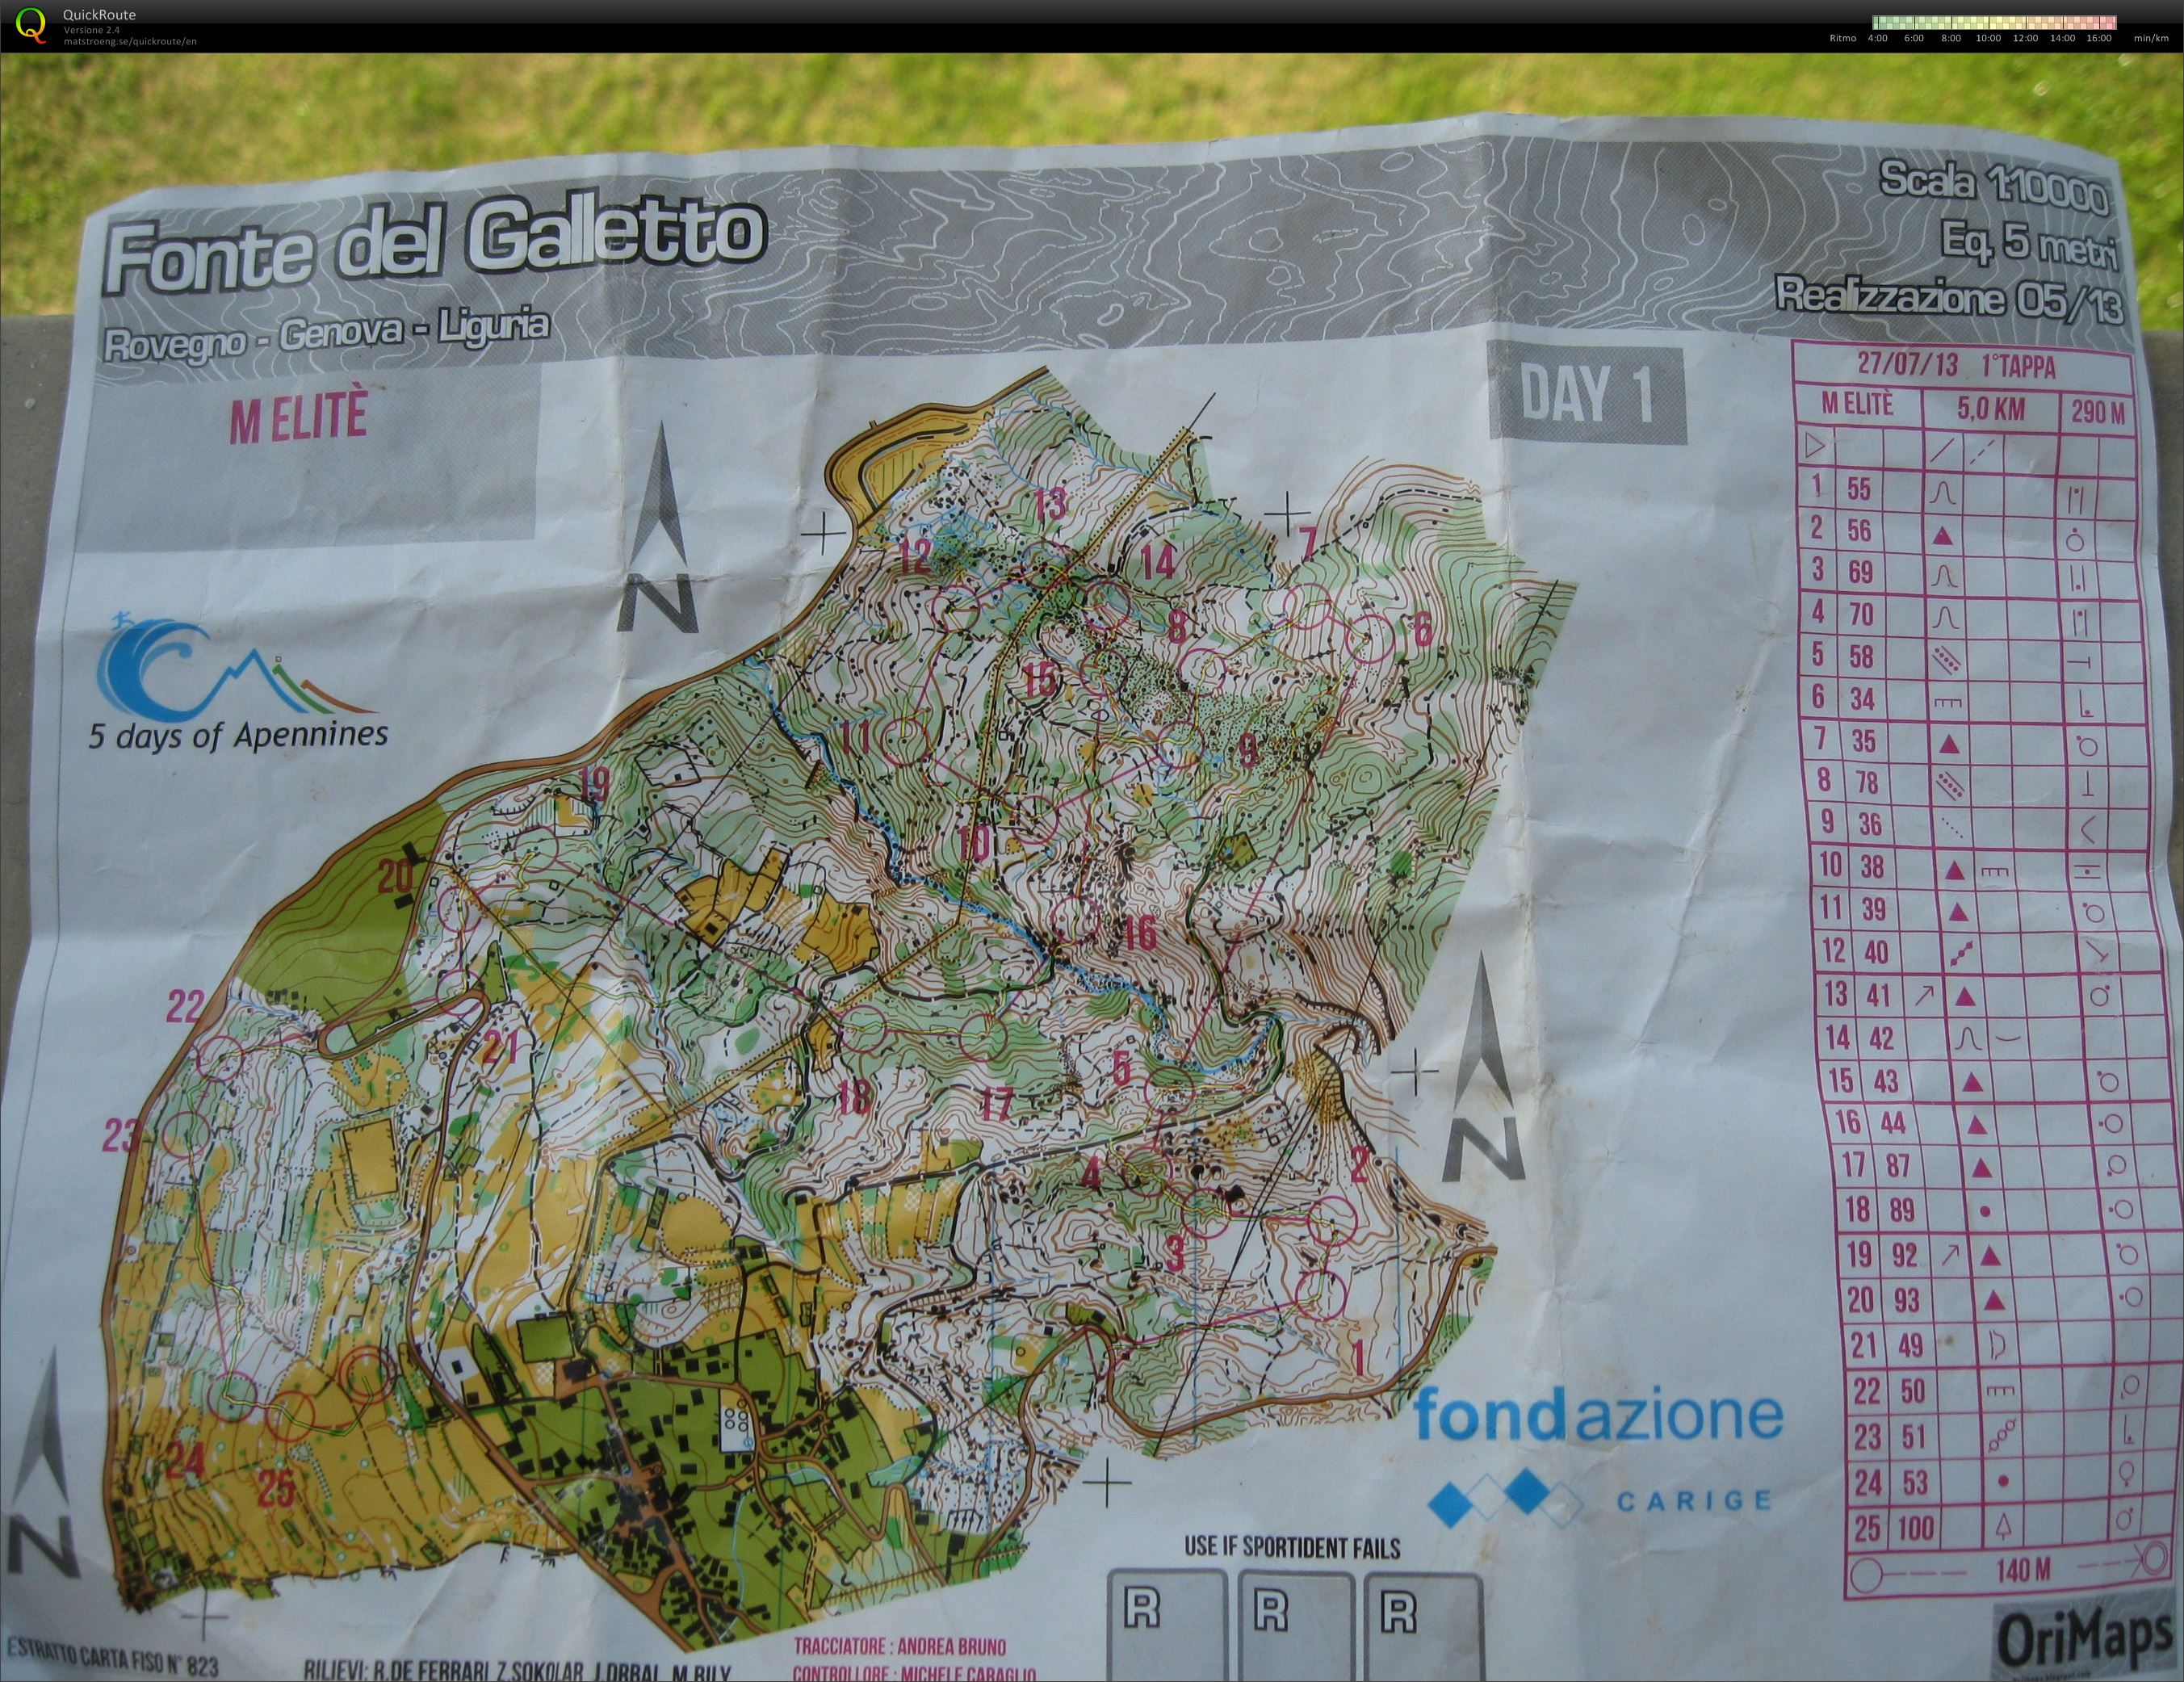 5 Days of Apennines - Day 1 (27/07/2013)